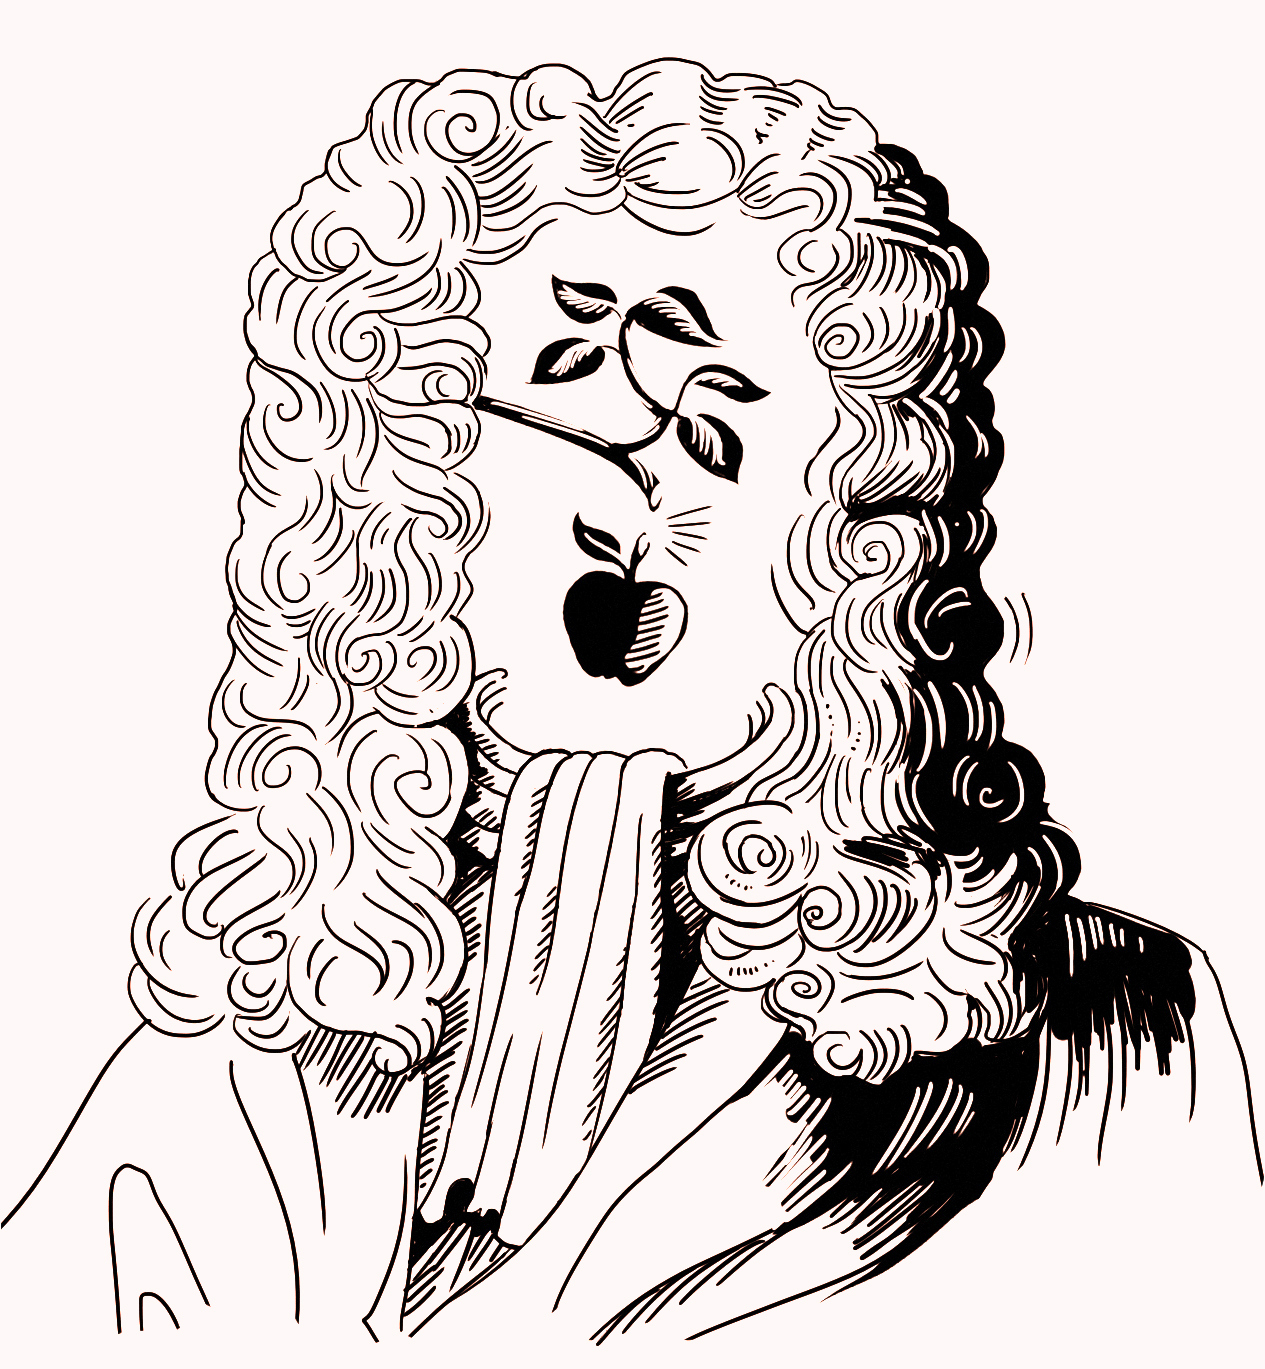 Illustration of Issac Newton with branch and apple over face